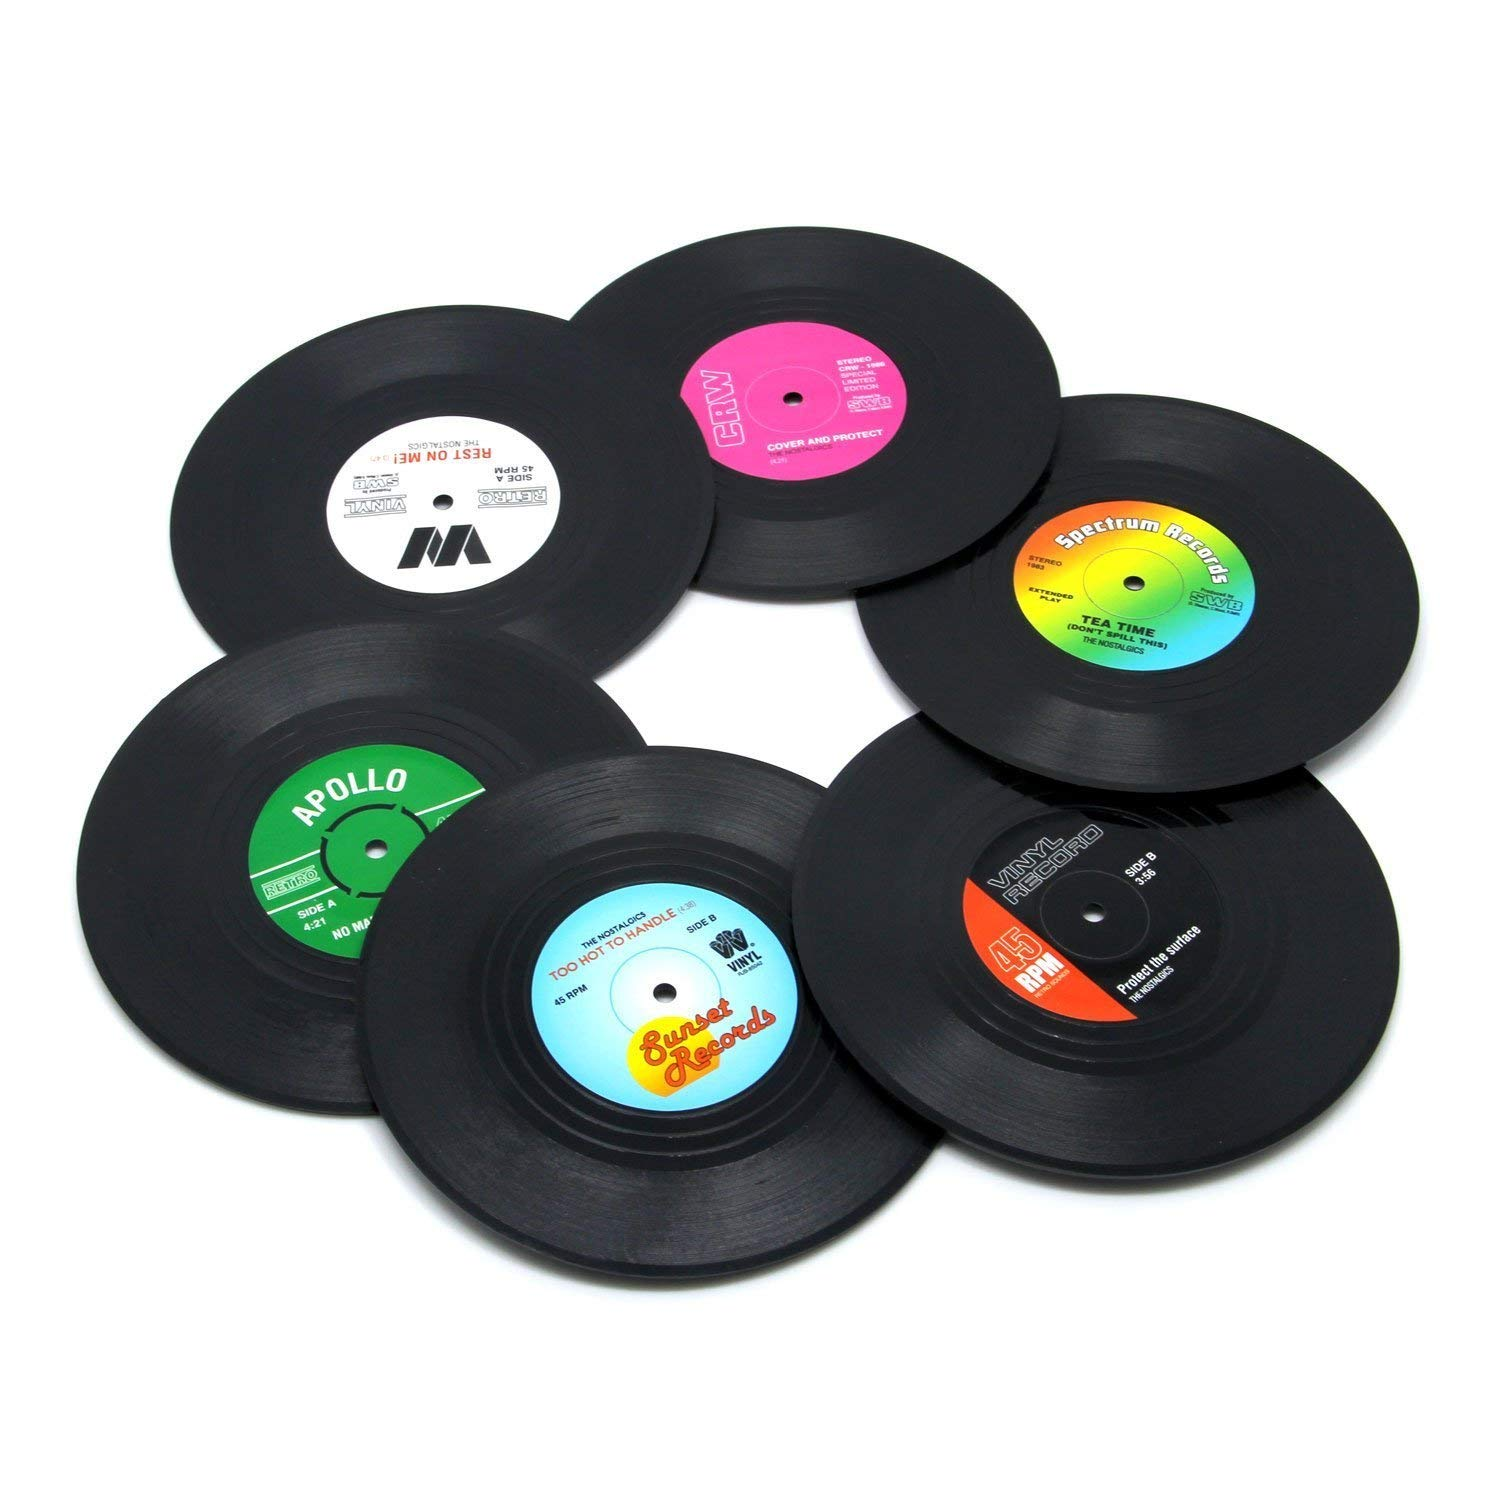 Coaster Set of 6 Colorful Vinyl Record Disk Coasters With Funny Labels-Tabletop Protection Prevents Furniture Damage (Record Disk)